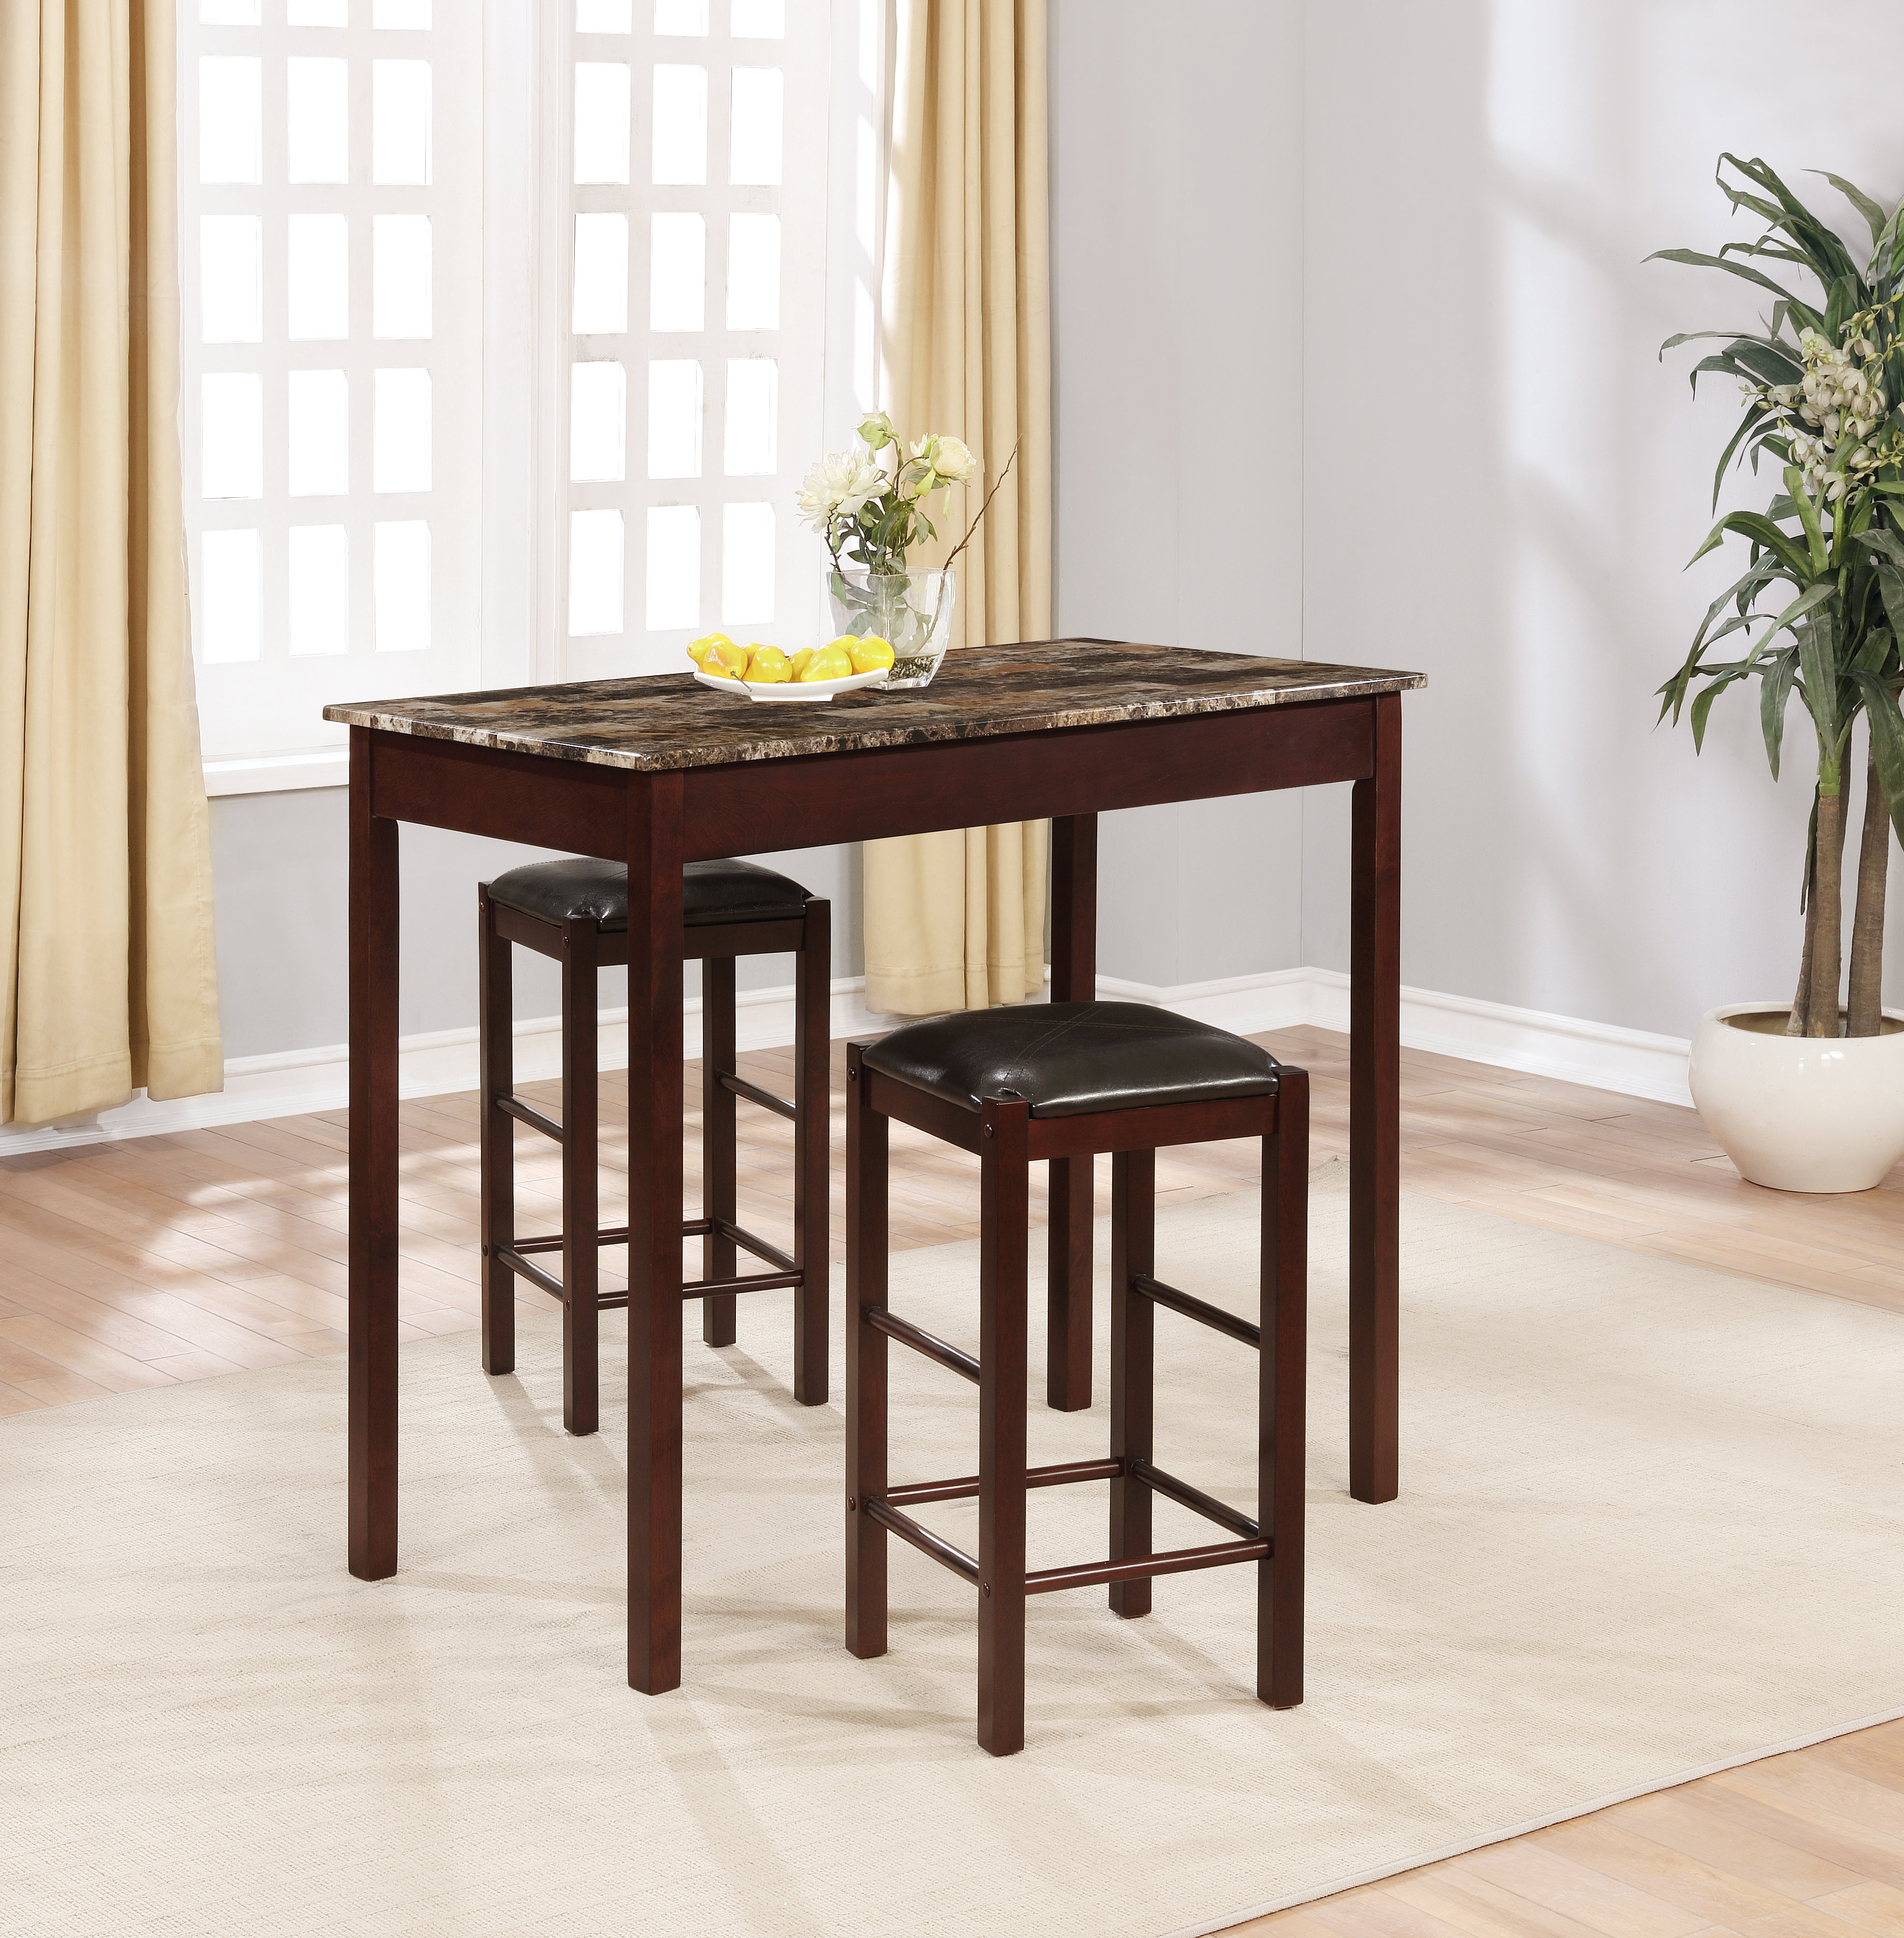 Winston Porter Sheetz 3 Piece Counter Height Dining Set With Well Known Sheetz 3 Piece Counter Height Dining Sets (View 3 of 20)